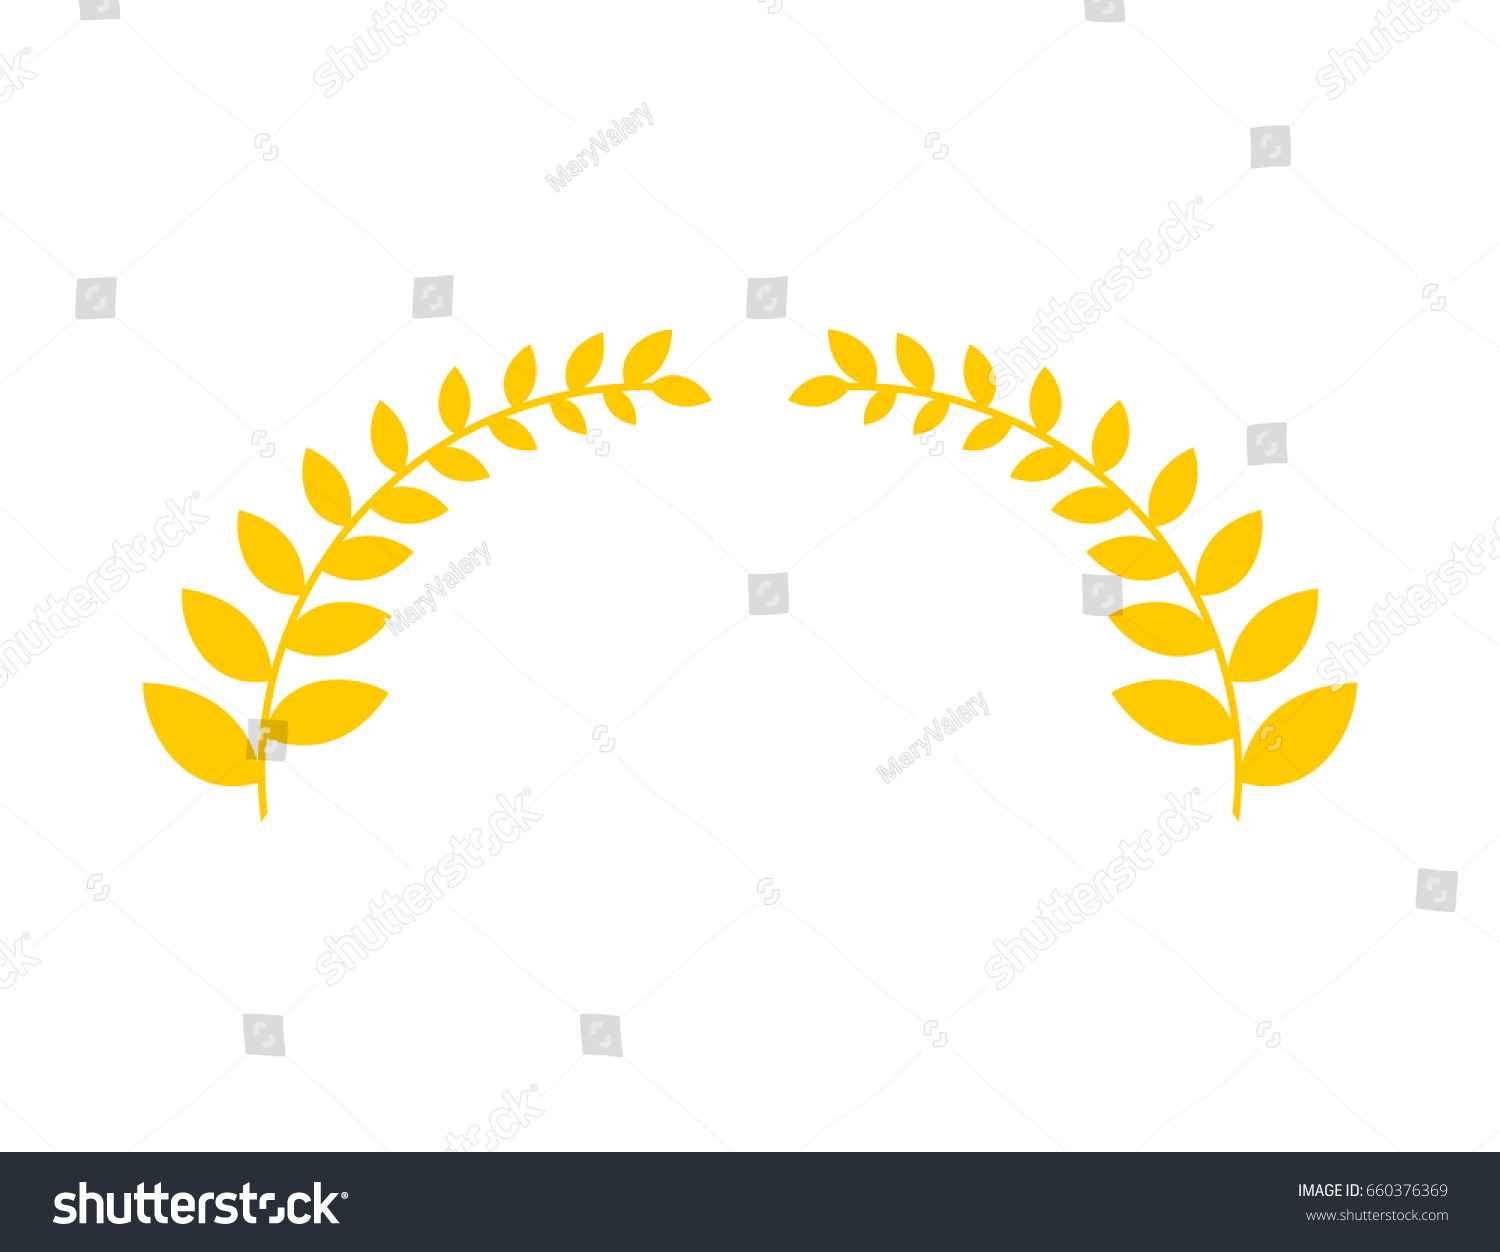 Olive Branch Is Golden Wreath Symbol Of Victory Accessory For